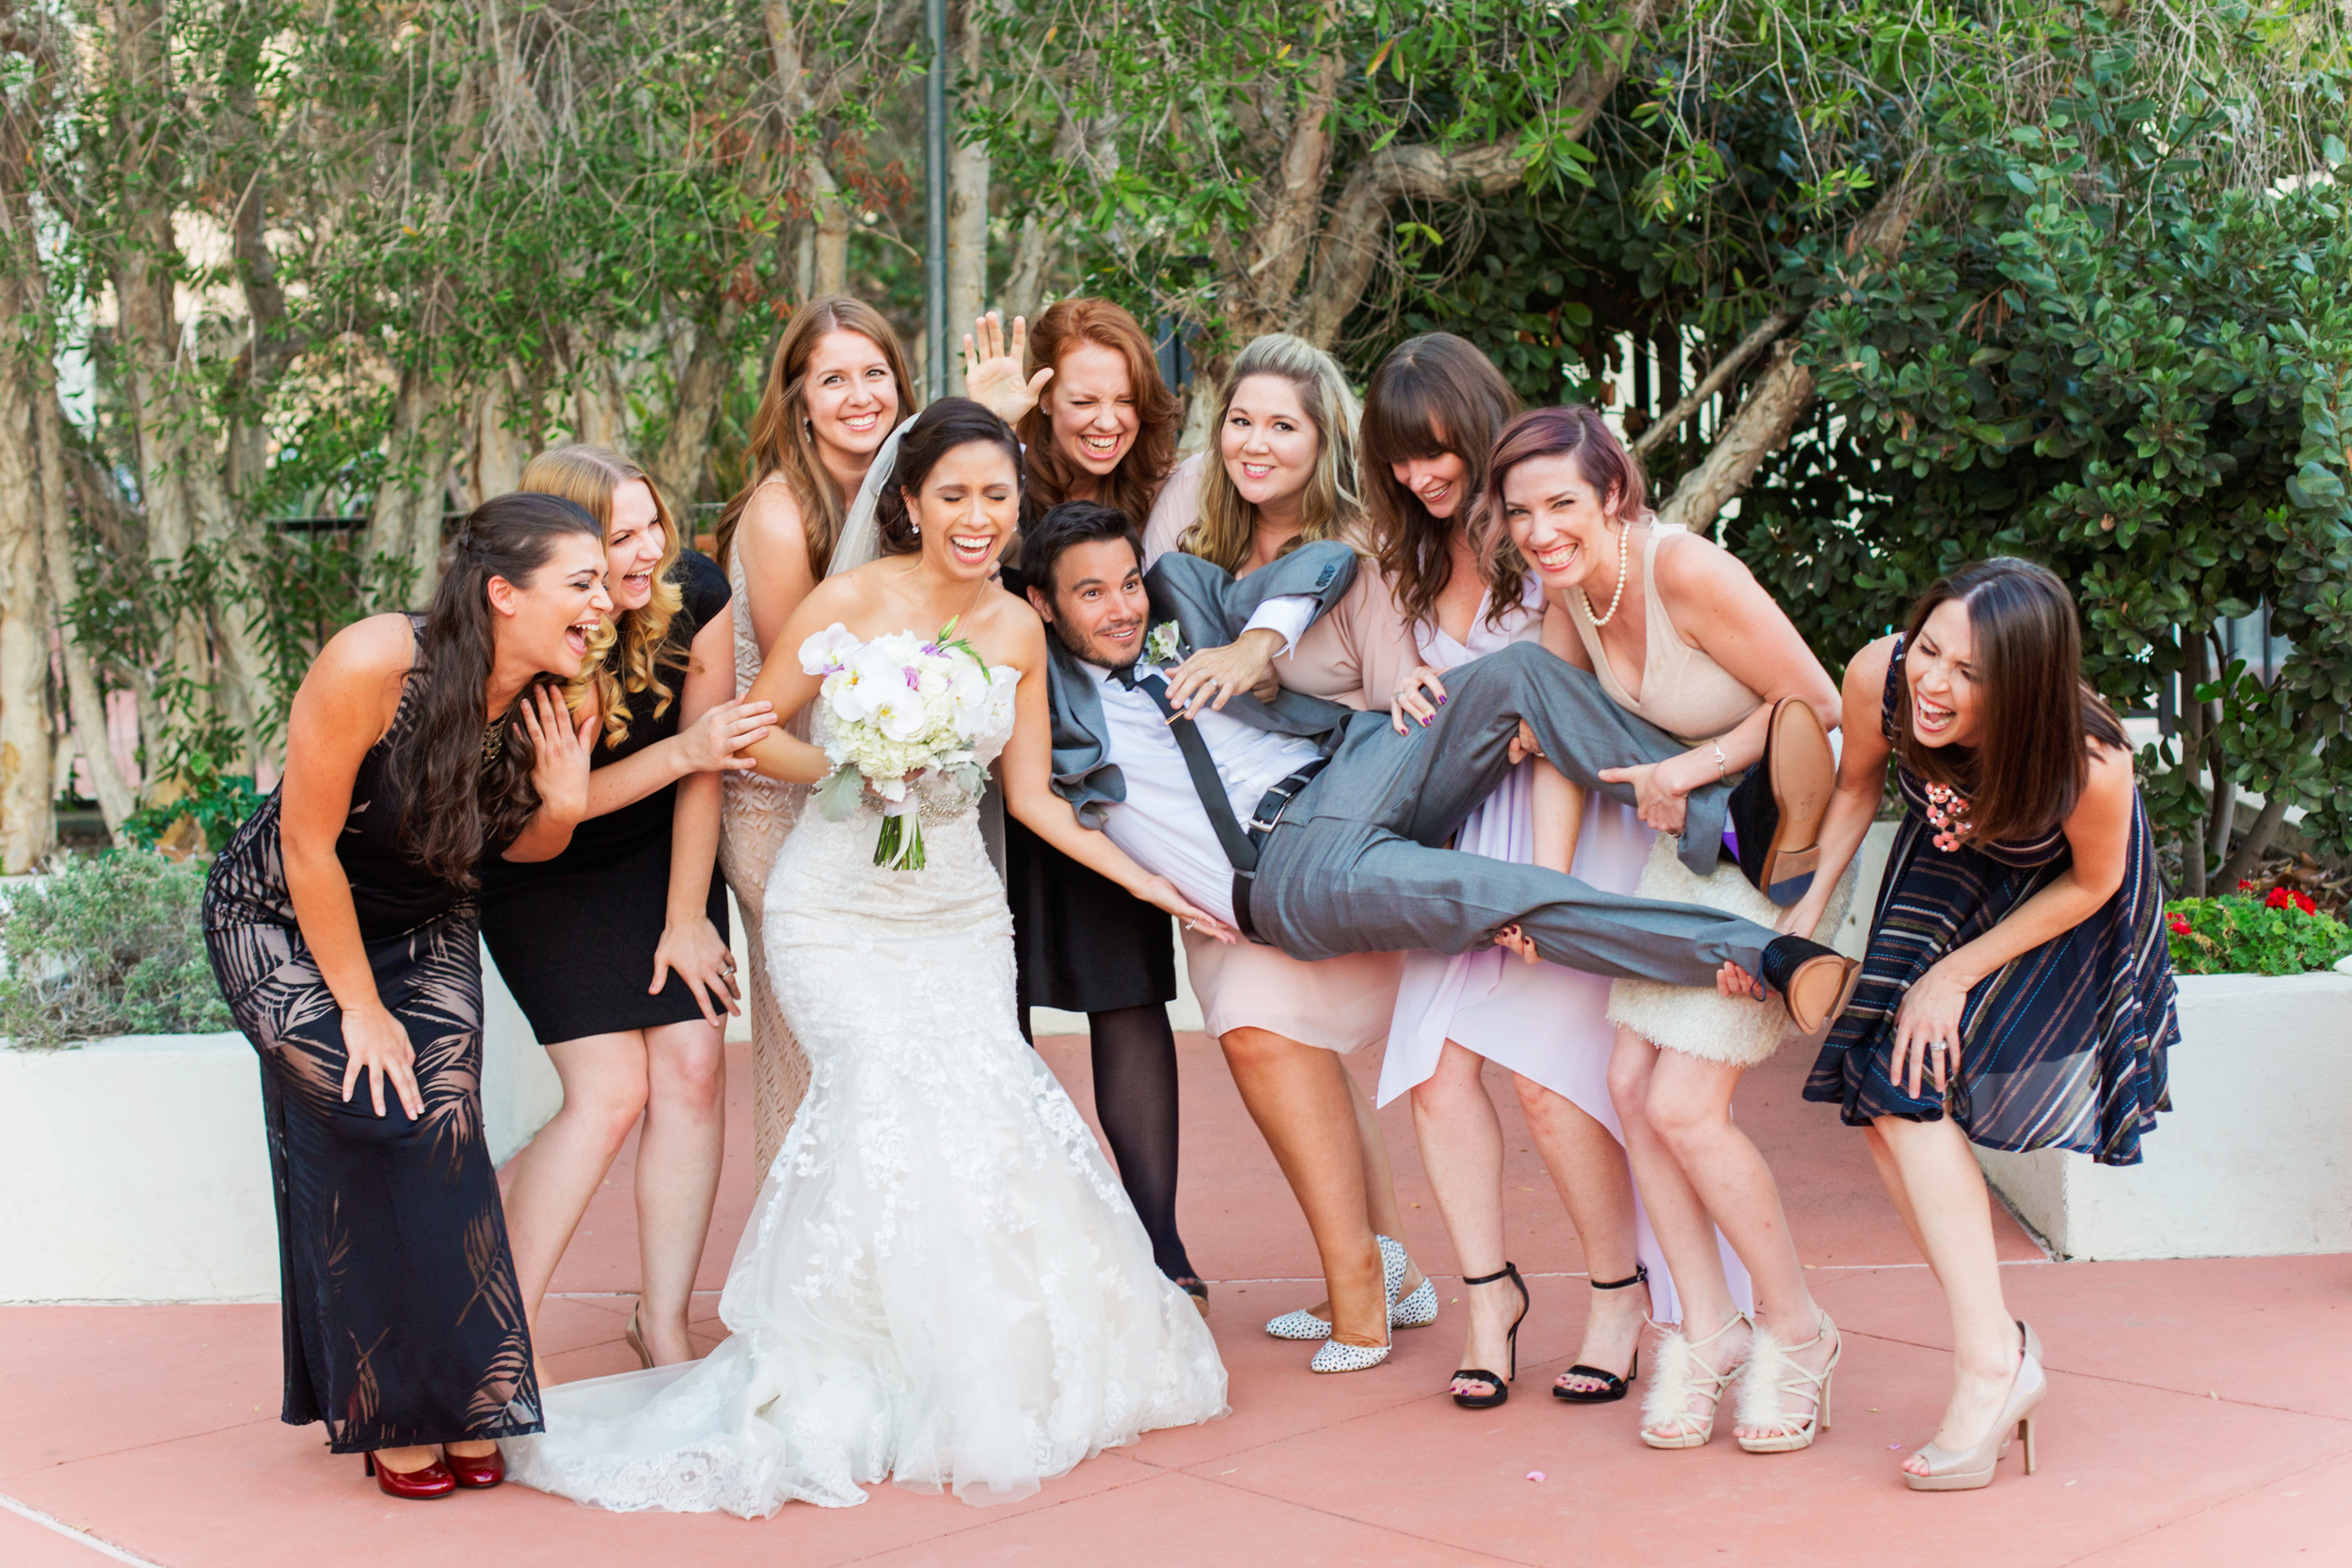 05_GroupPortraits_SmithWedding_0735.jpg